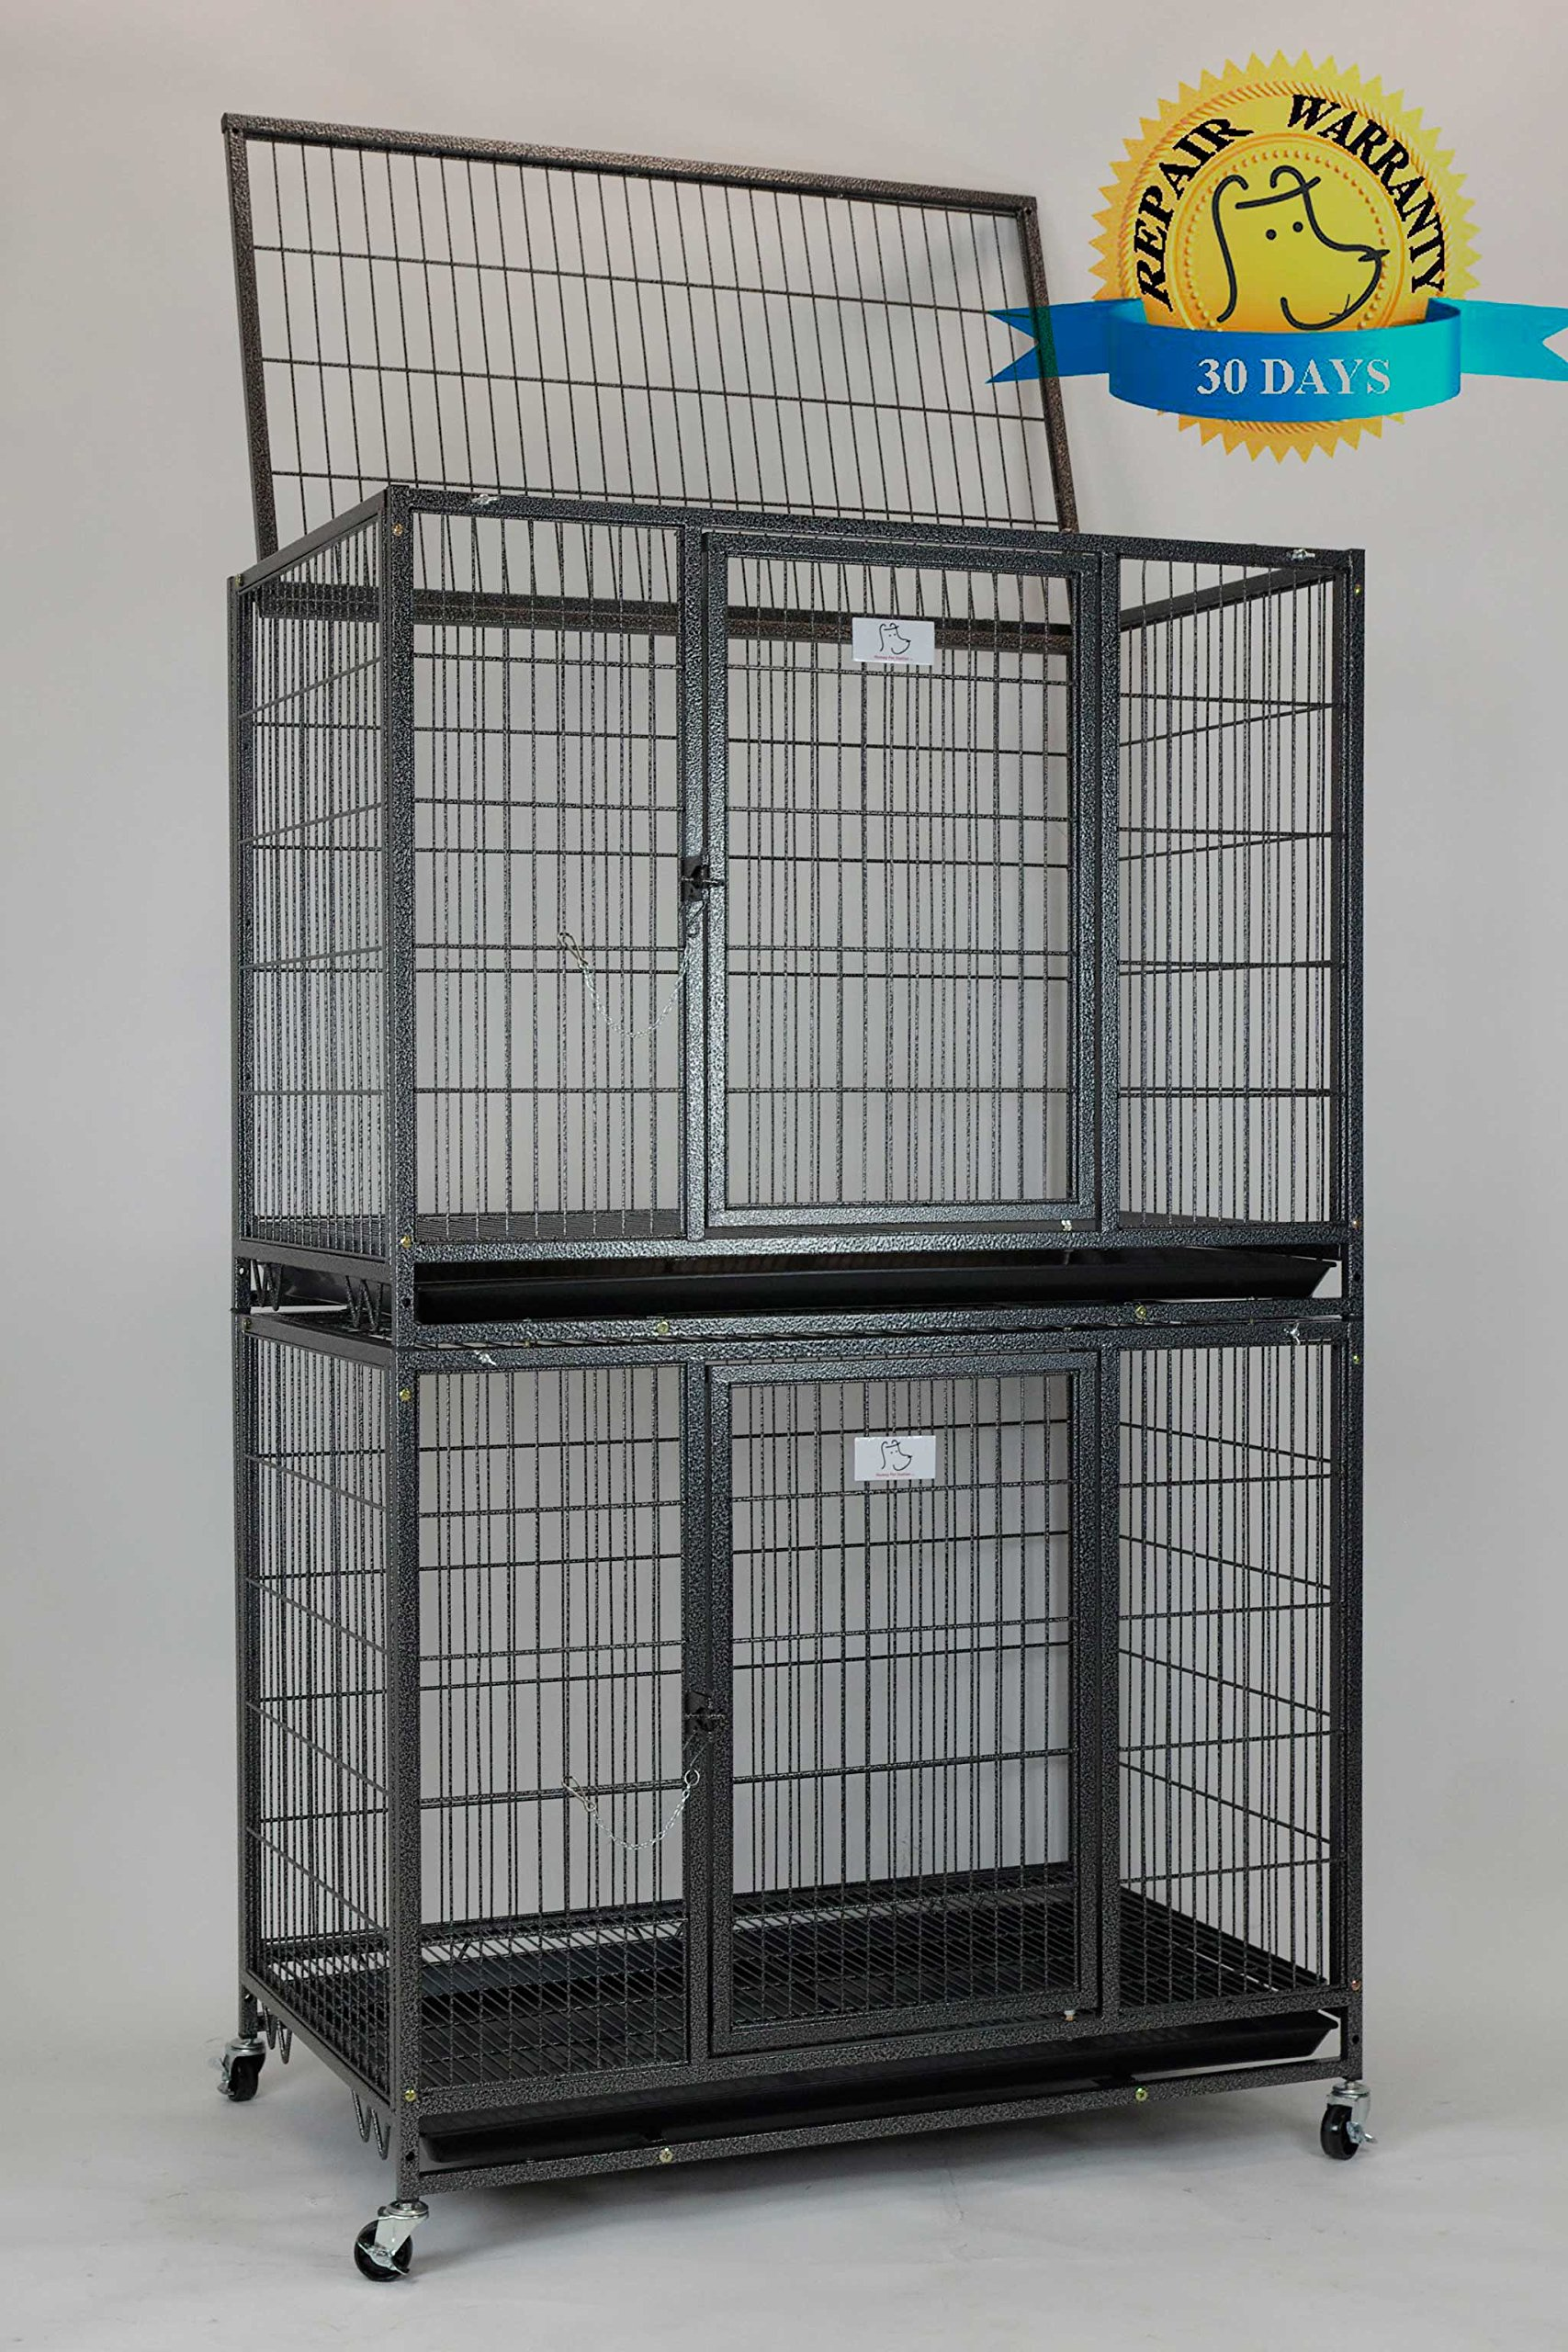 New 37'' Homey Pet Open Top Heavy Duty Dog Pet Cage Kennel w/ Tray, Floor Grid, and Casters